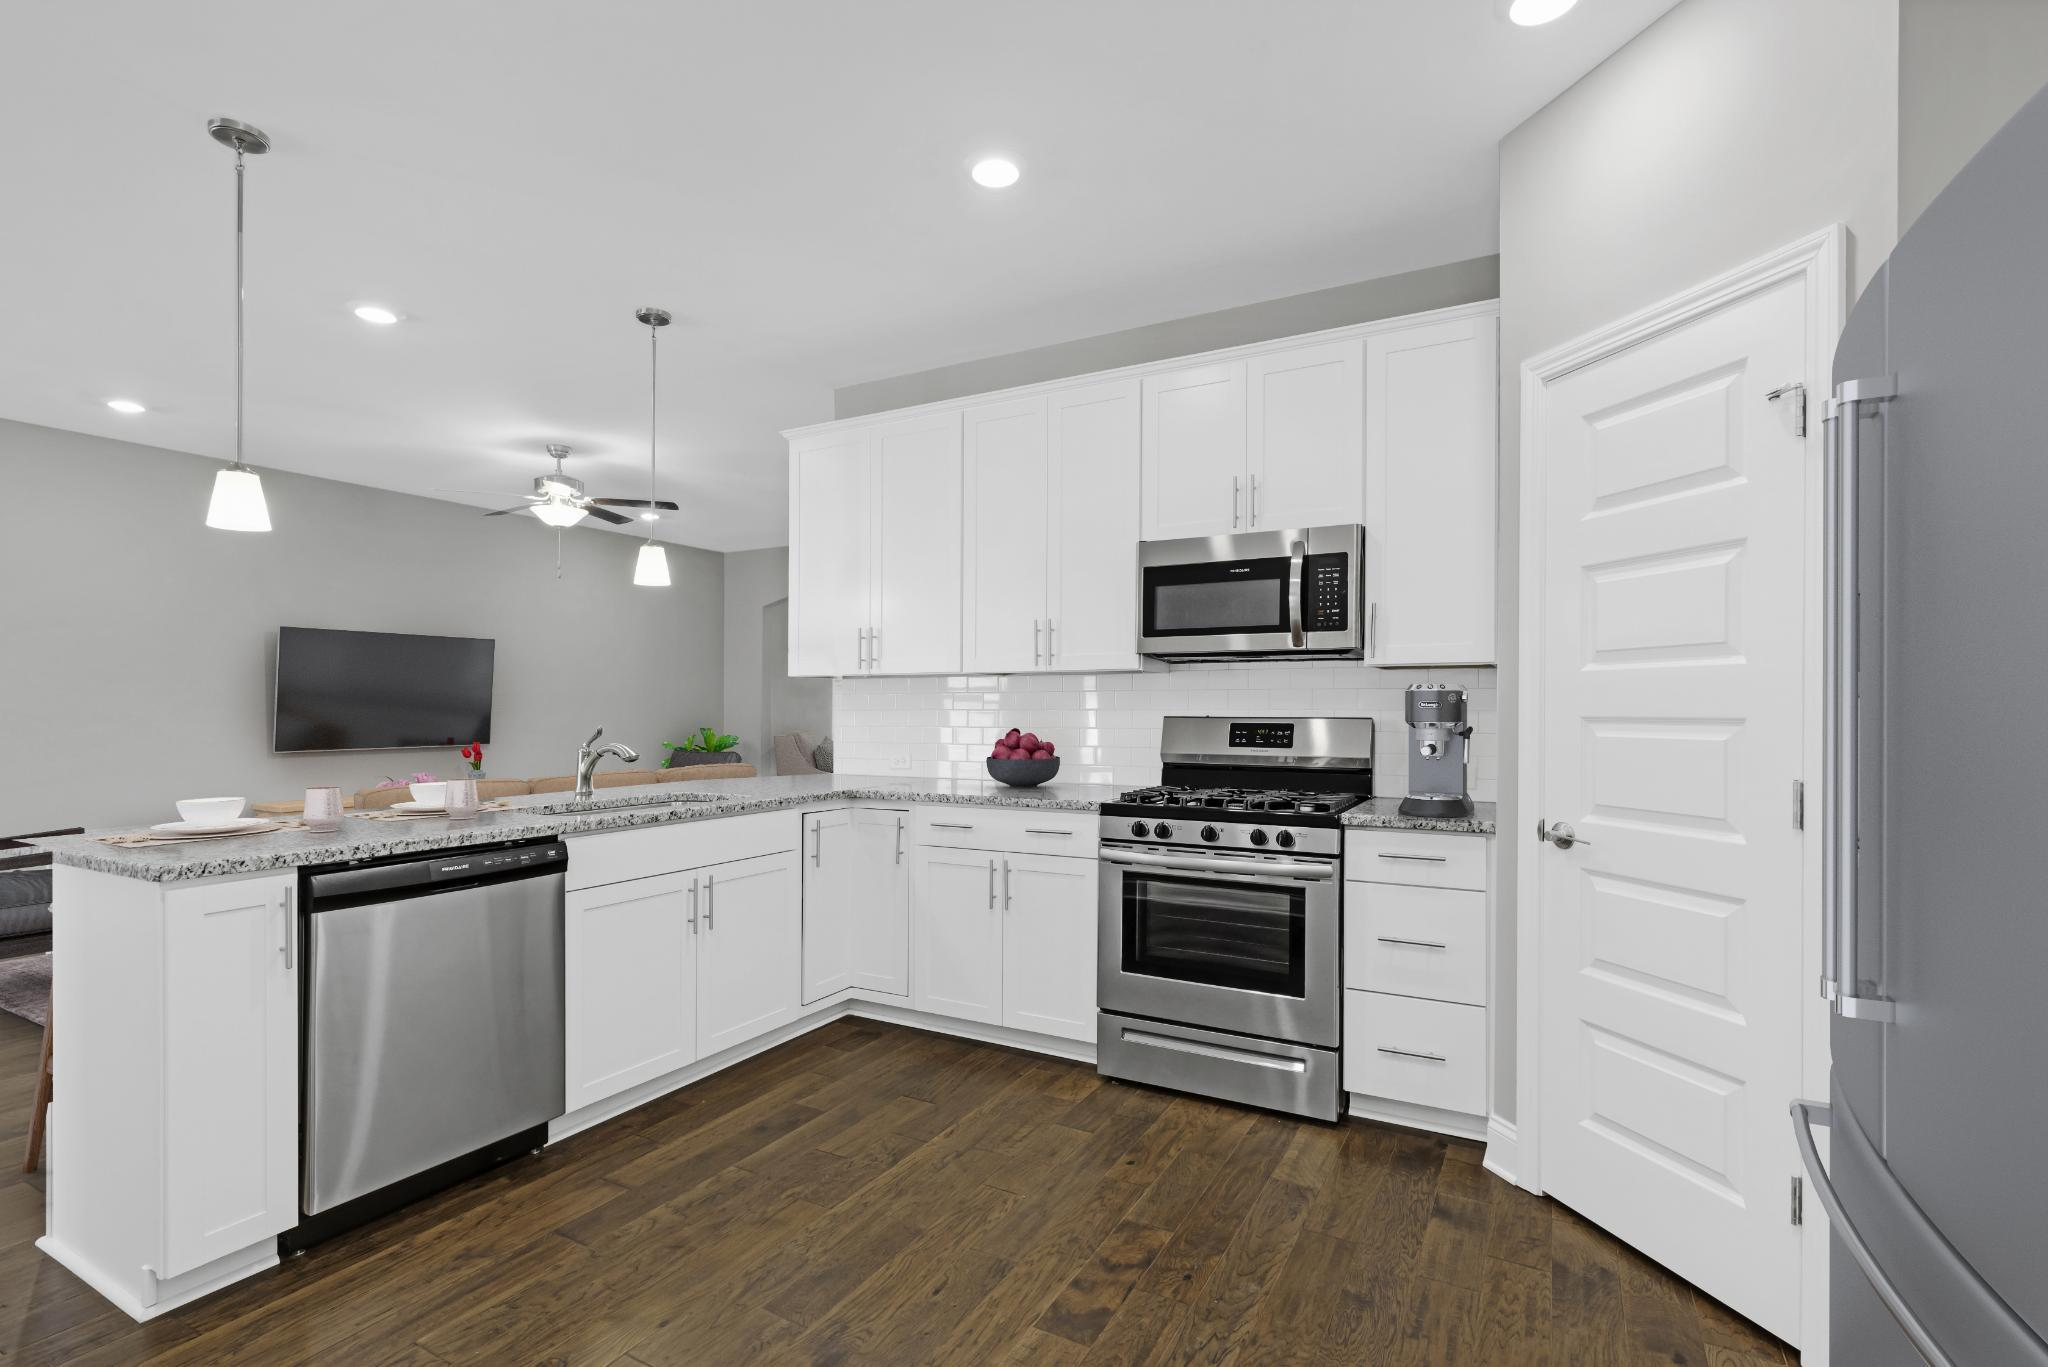 Kitchen featured in The Waverleigh Courtyard Cottage By Goodall Homes in Chattanooga, GA